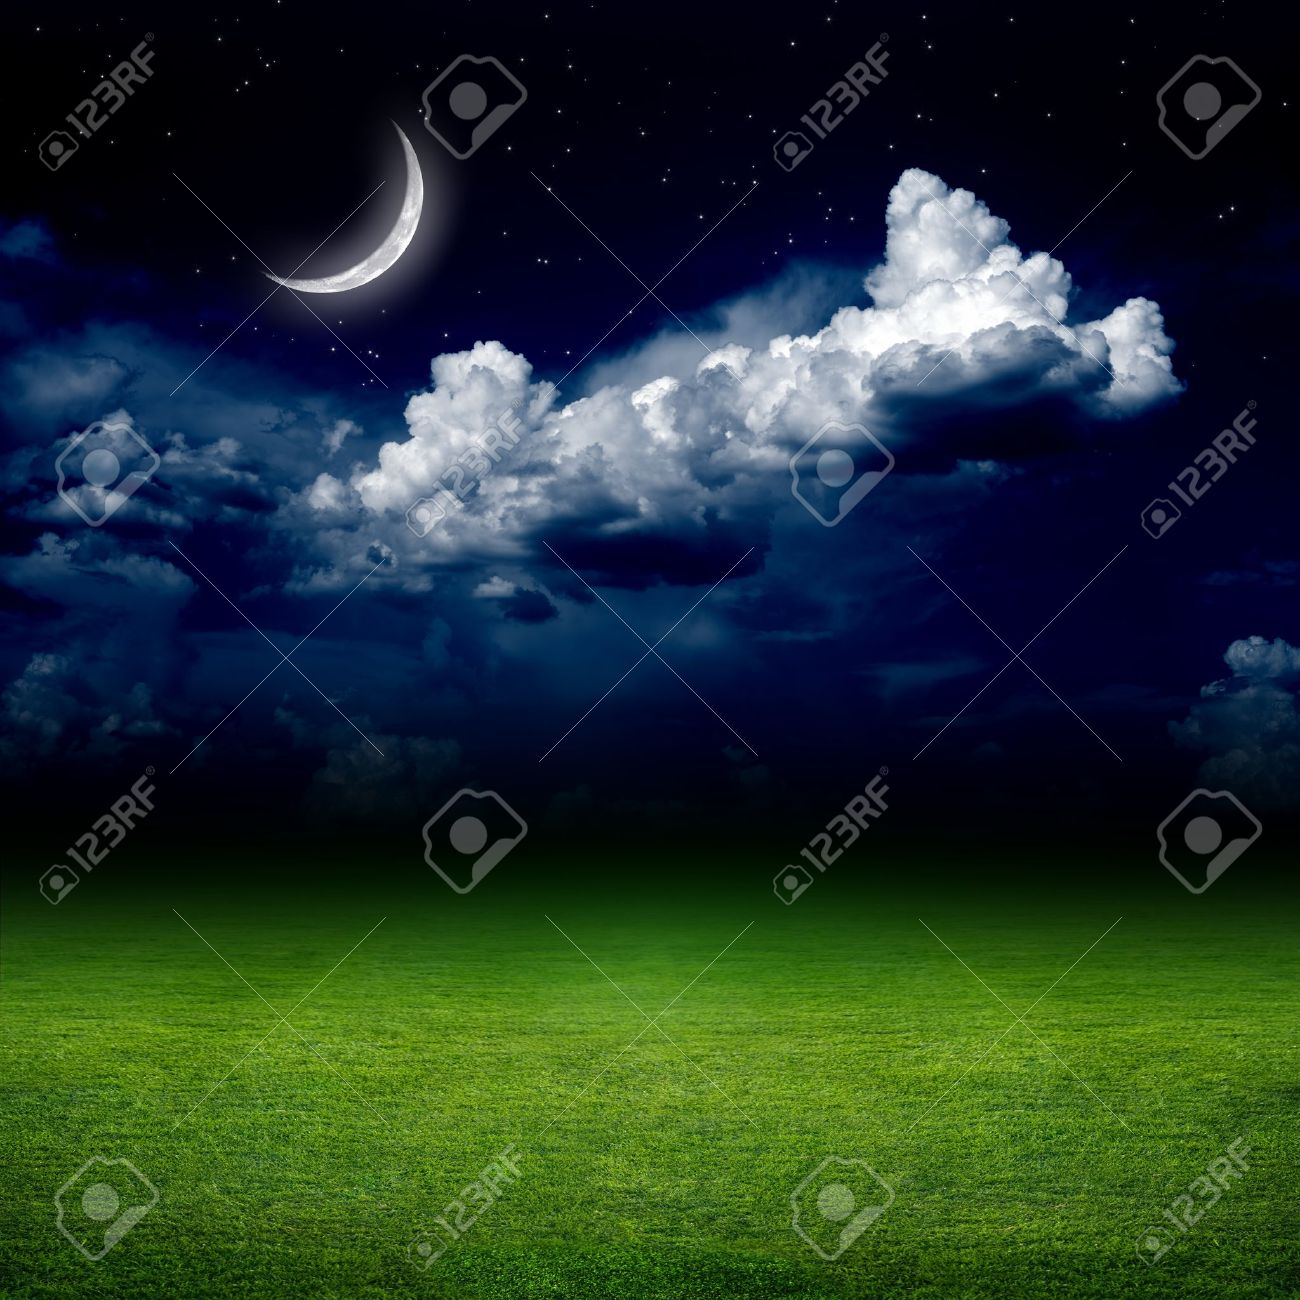 grass field at night. Night View Of Green Grass Field. Dark Sky With White Clouds, Moon And Stars Field At S